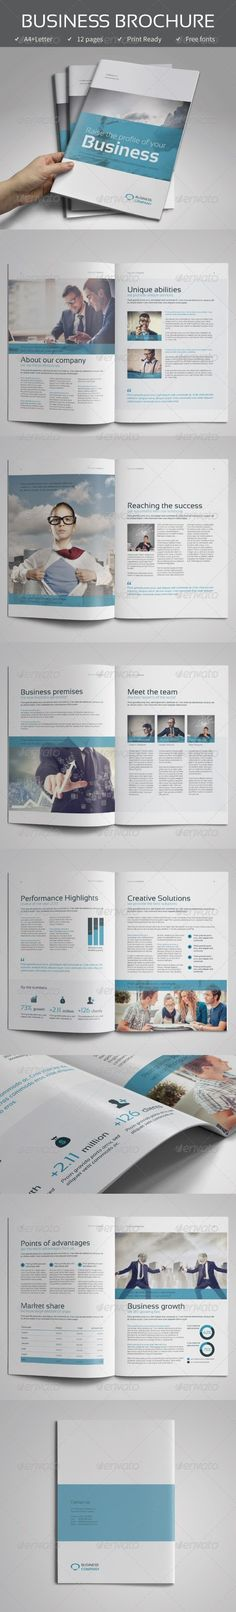 Corporate Business Brochure vol.1 — InDesign INDD #simple #professional • Available here → https://graphicriver.net/item/corporate-business-brochure-vol1/7805534?ref=pxcr